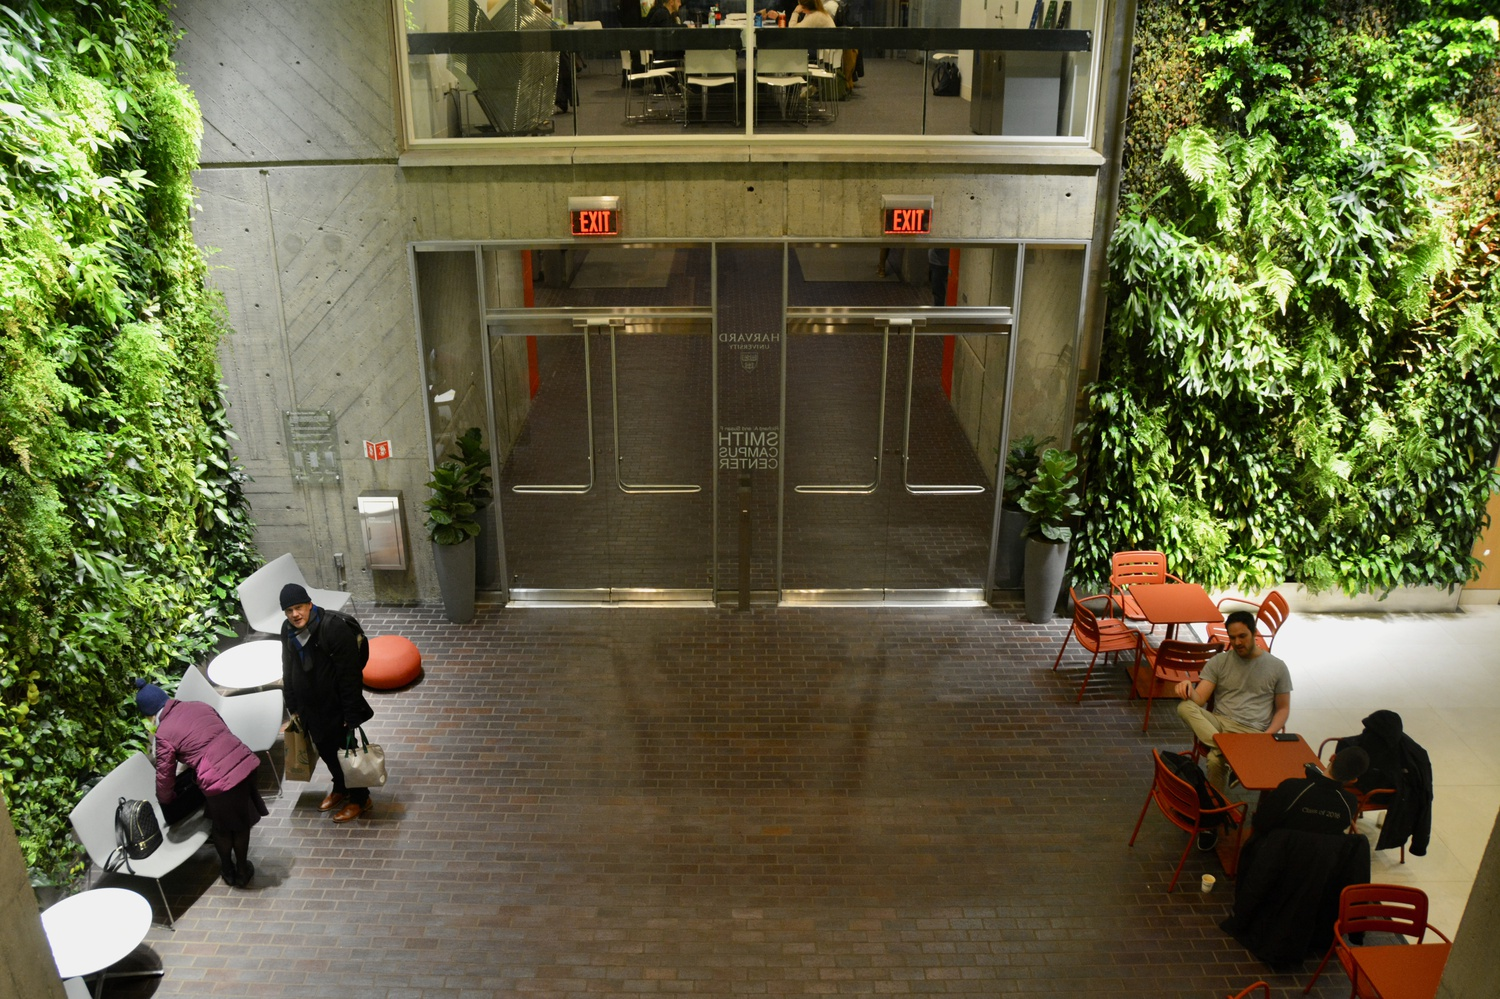 Police arrested a man in the Smith Campus Center by Bon Me shortly before noon on Thursday.